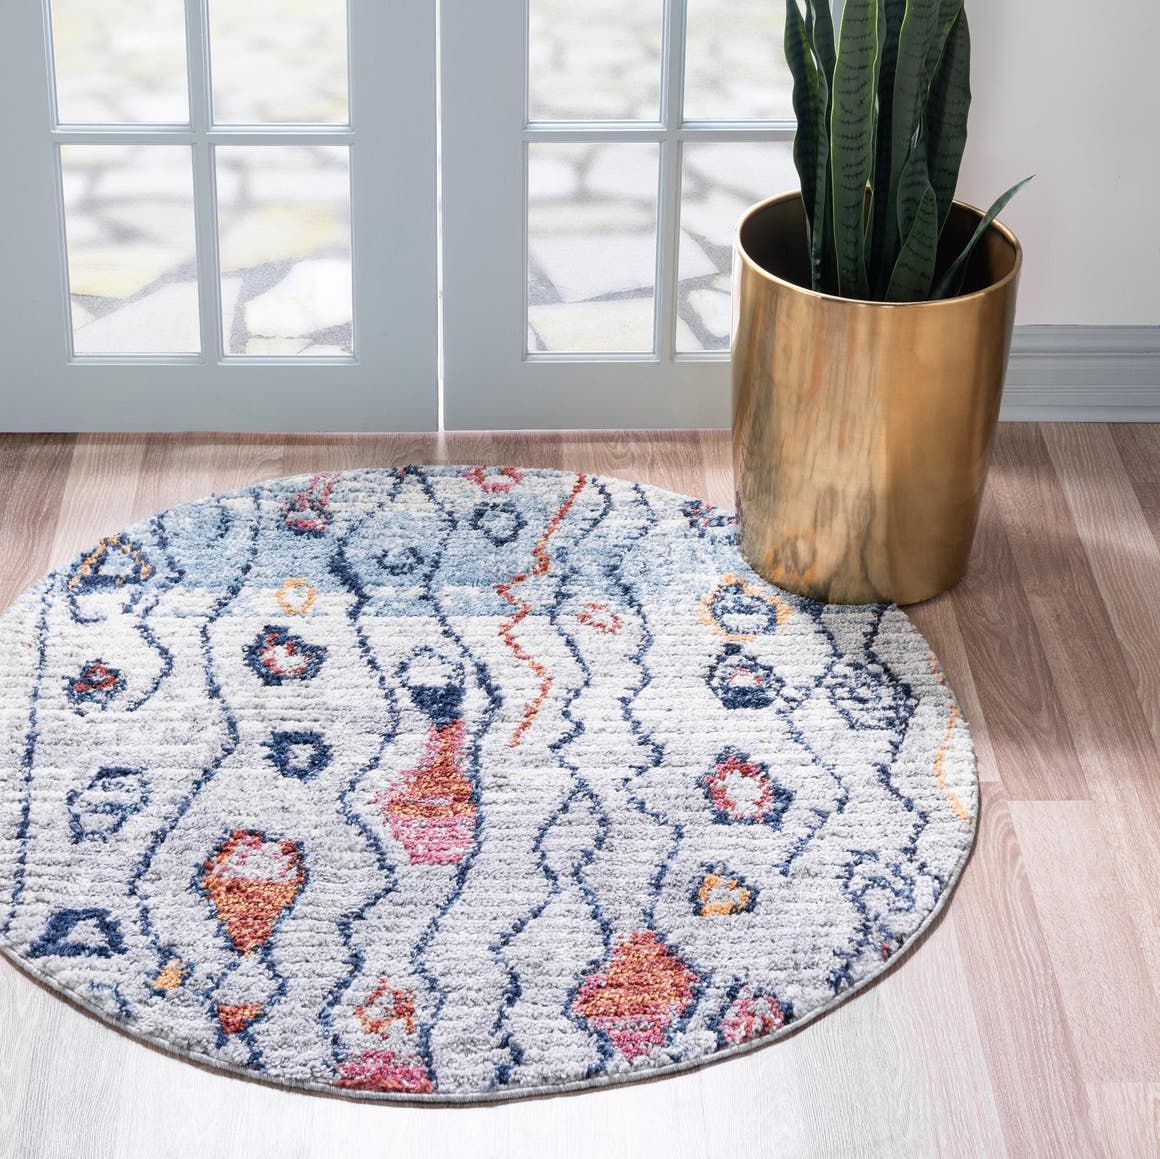 Morocco Multi 3 Ft Round Area Rug In 2020 Rugs Colorful Rugs